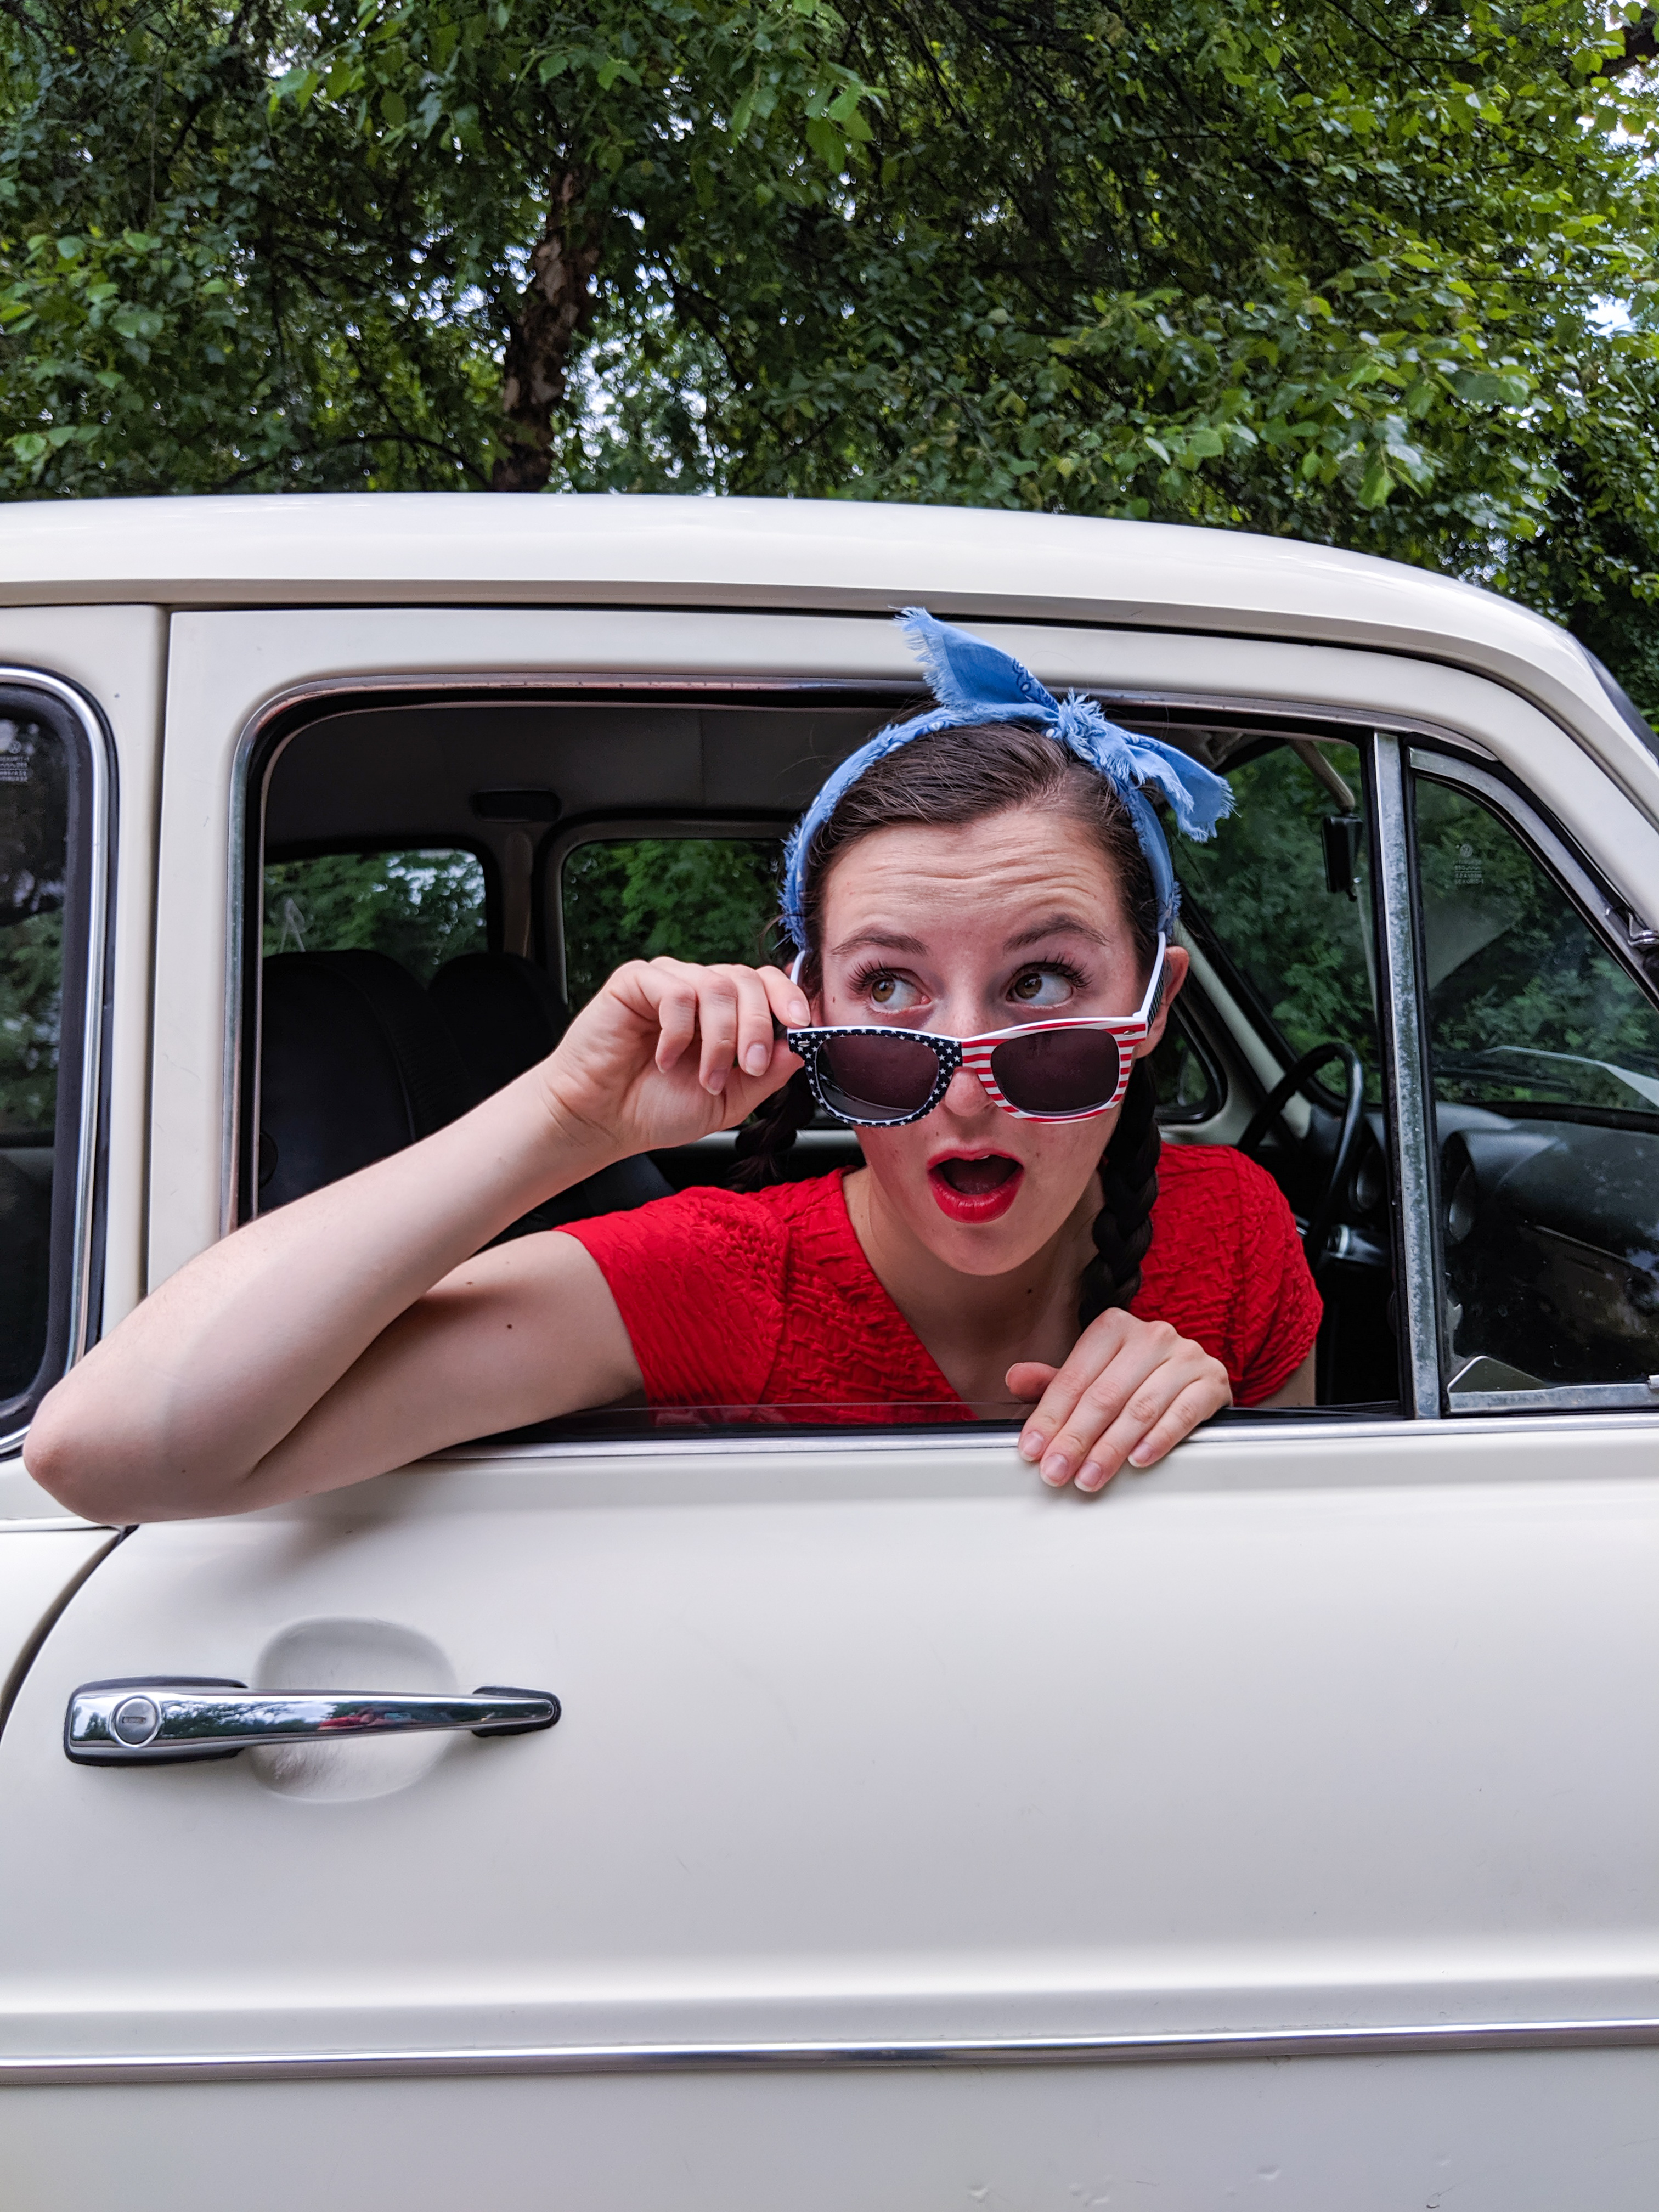 patriotic sunglasses, blue bandanna, old car, red lipstick